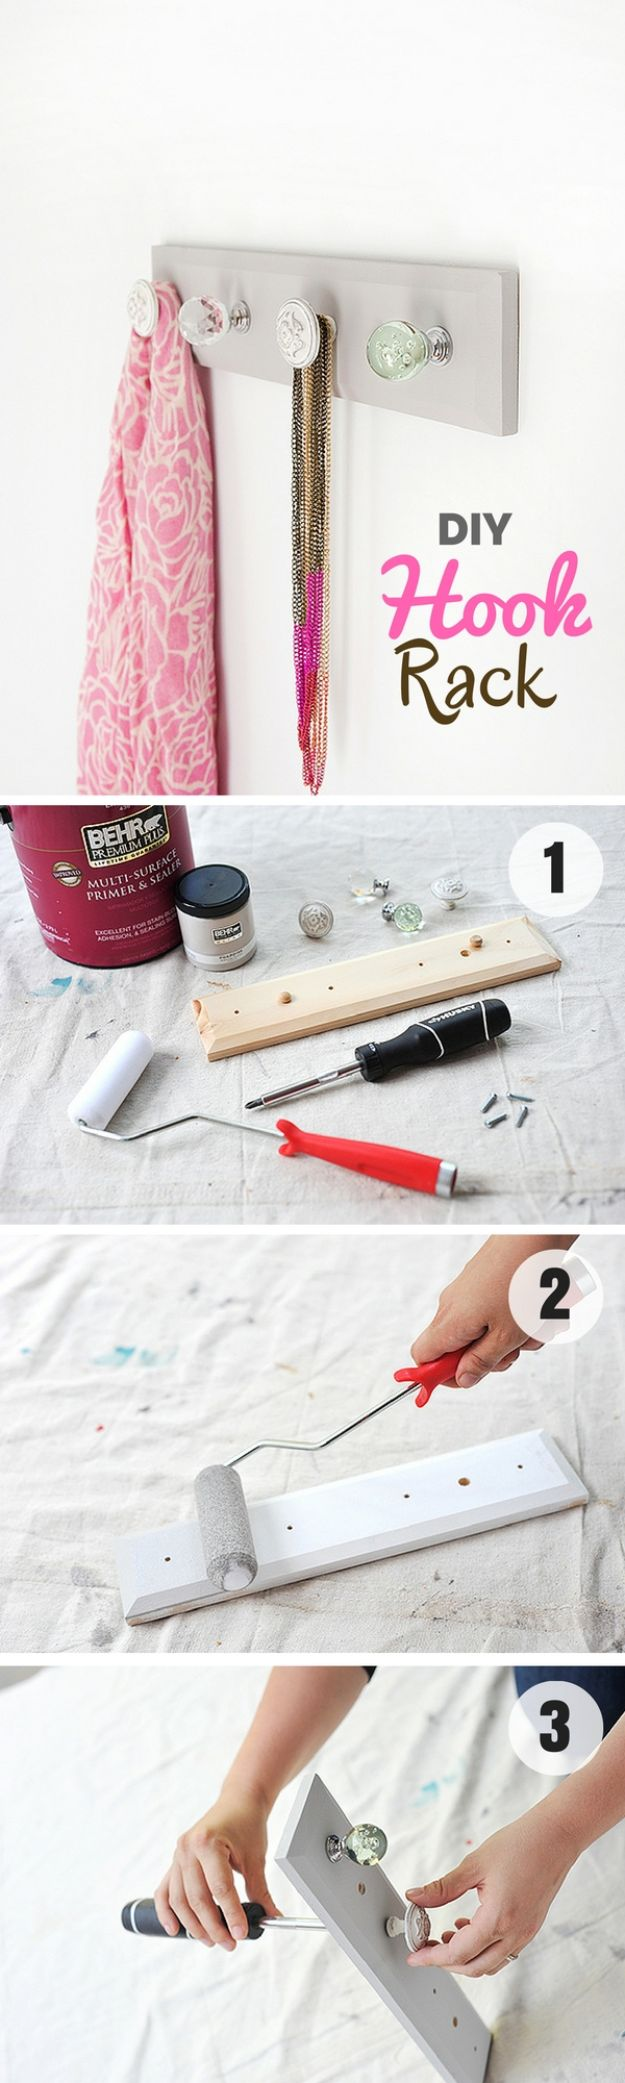 DIY Modern Home Decor - DIY Hook Rack - Room Ideas, Wall Art on A Budget, Farmhouse Style Projects - Easy DIY Ideas and Decorations for Apartments, Living Room, Bedroom, Kitchen and Bath - Fixer Upper Tips and Tricks